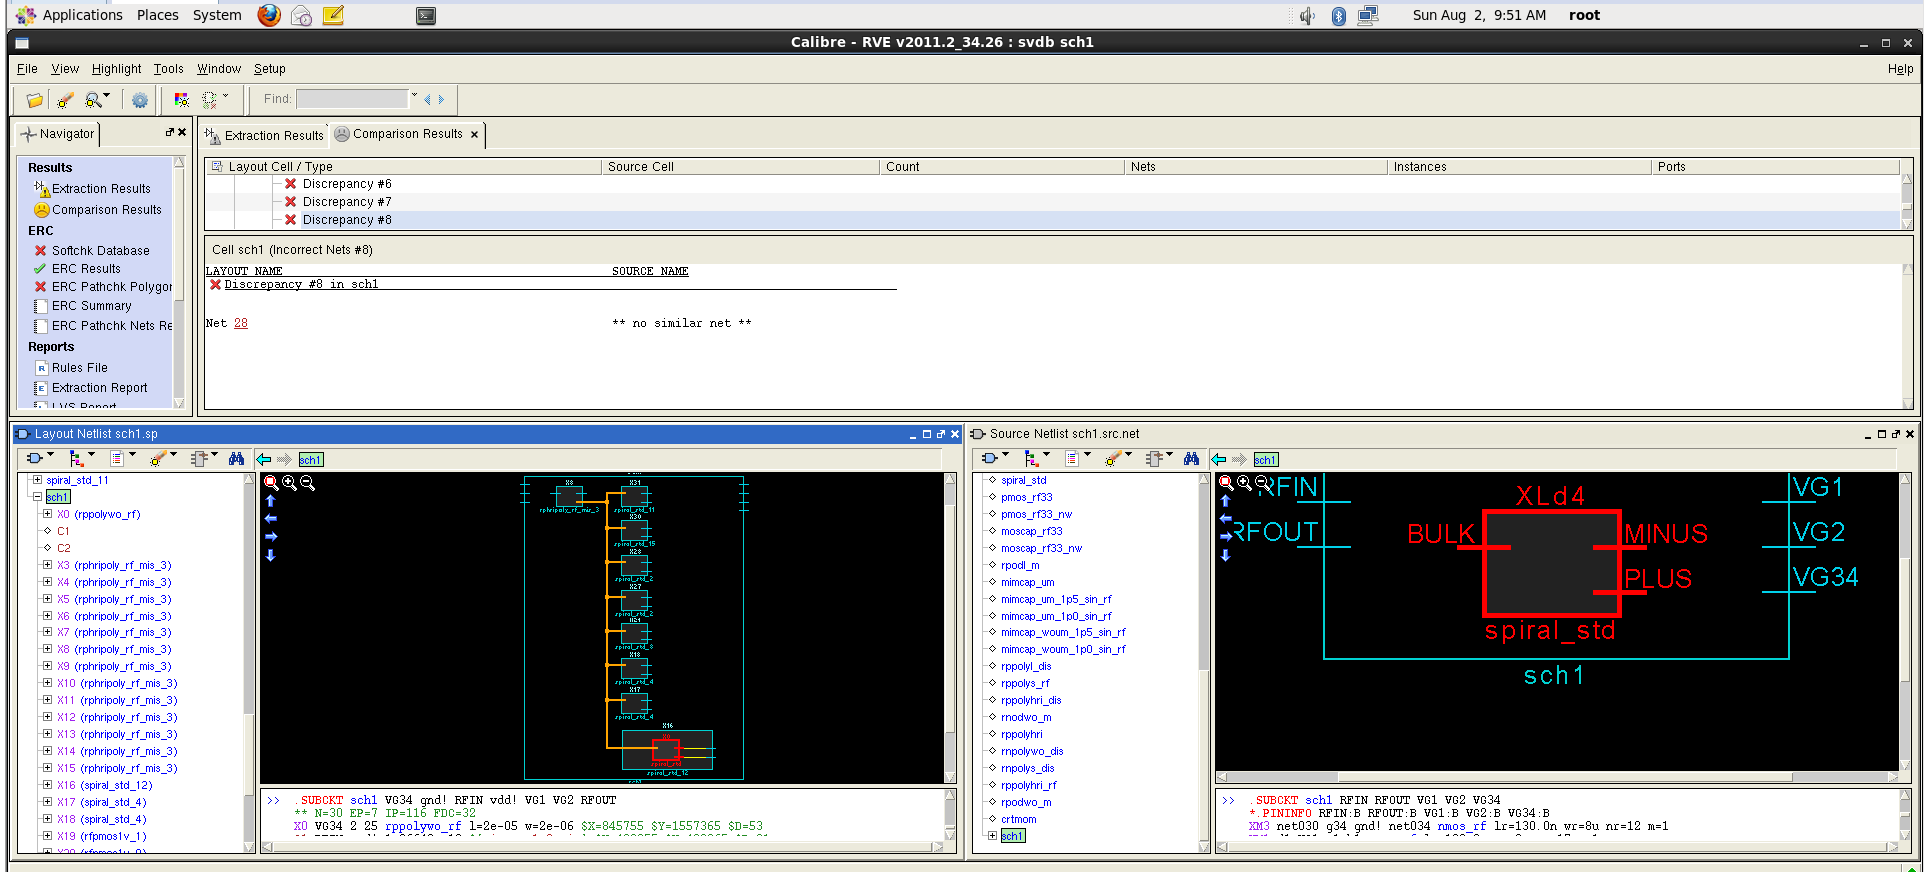 Why Bulk Of Spiral Insductors Are Connected To Each Other Custom Circuit Design Suite Screenshot 18 I Also Have Similar Errors With The Inductors Calibre Is Not Able Find Net Attached Another Image Shows